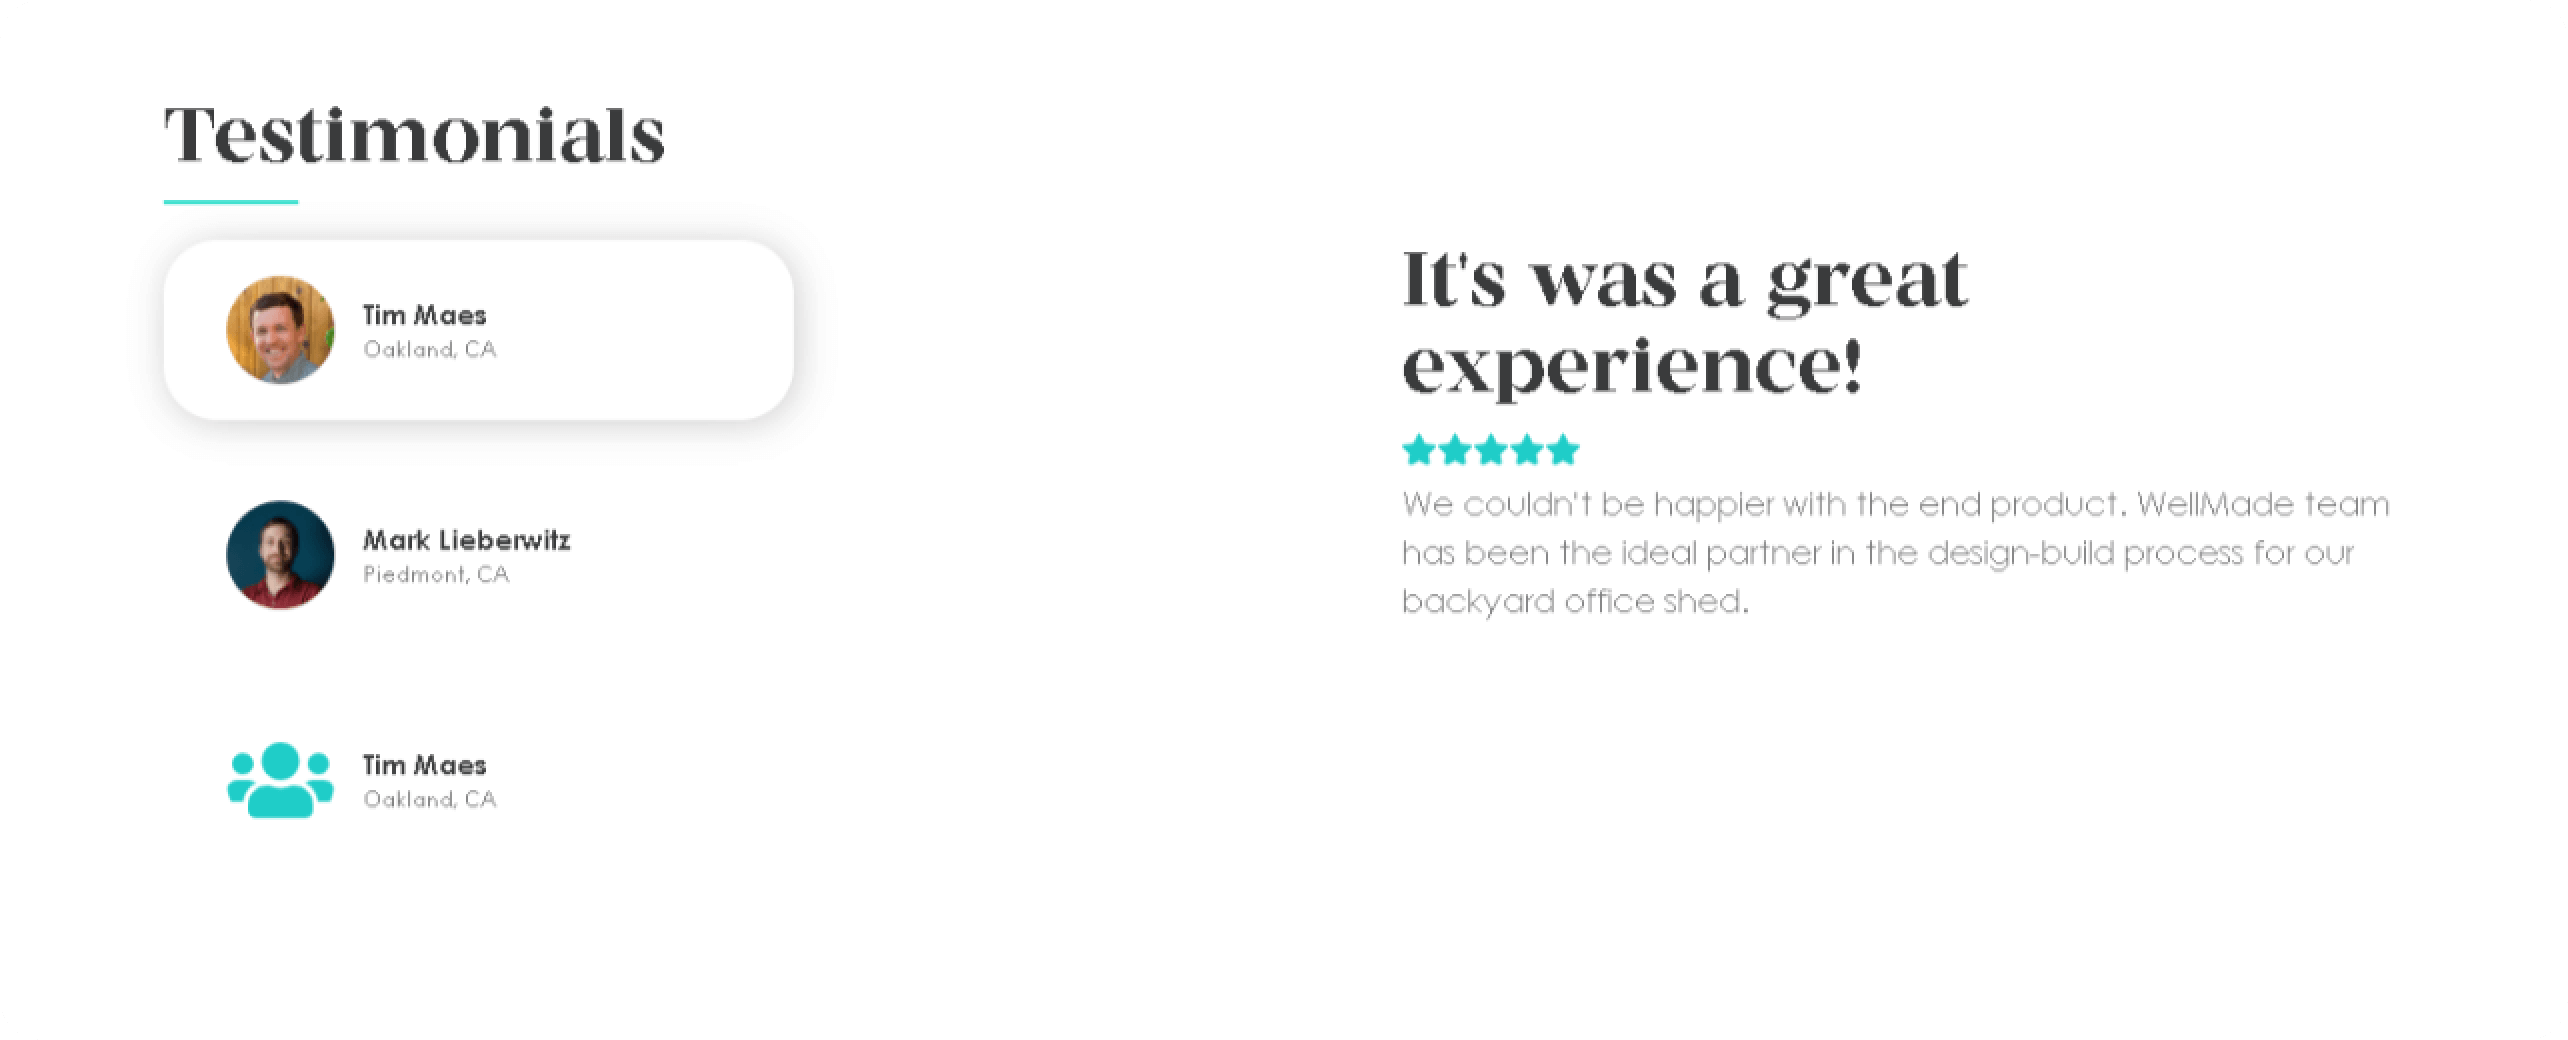 Simple-testimonials-but-can-include-catchy-animations-for-website-would-be-great-example